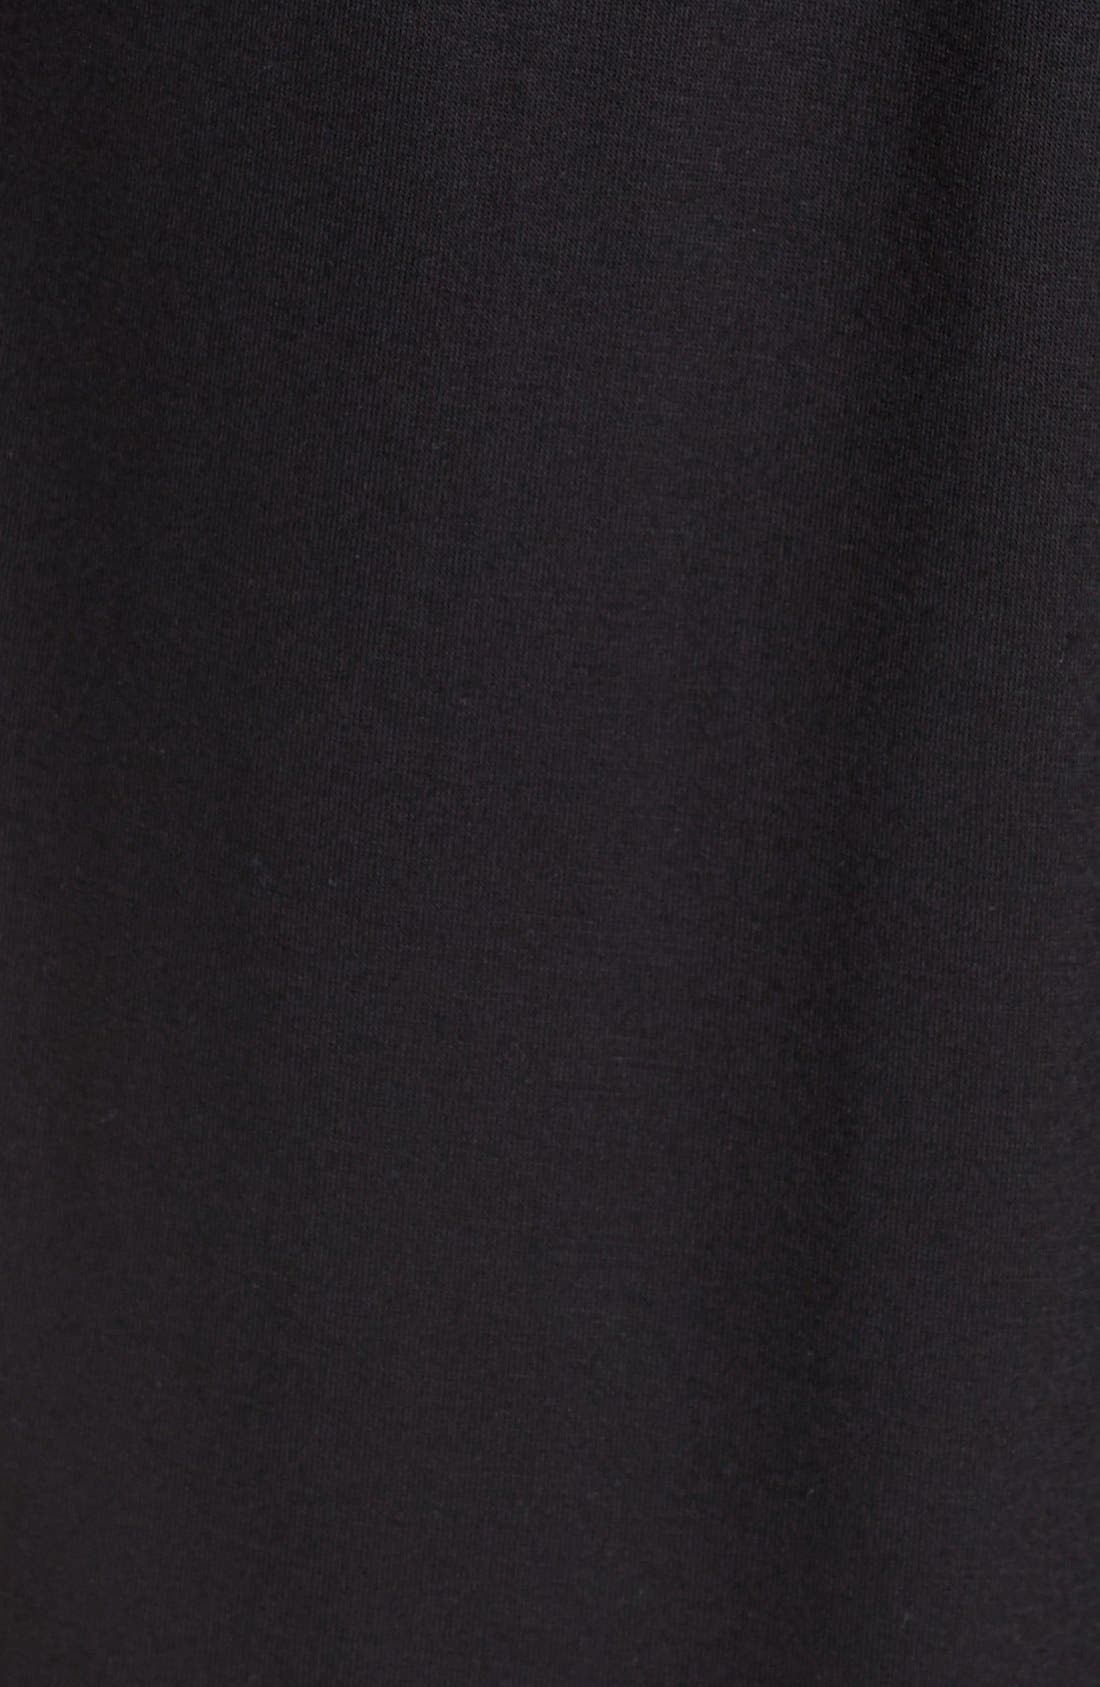 All American Jersey Robe,                             Alternate thumbnail 6, color,                             BLACK